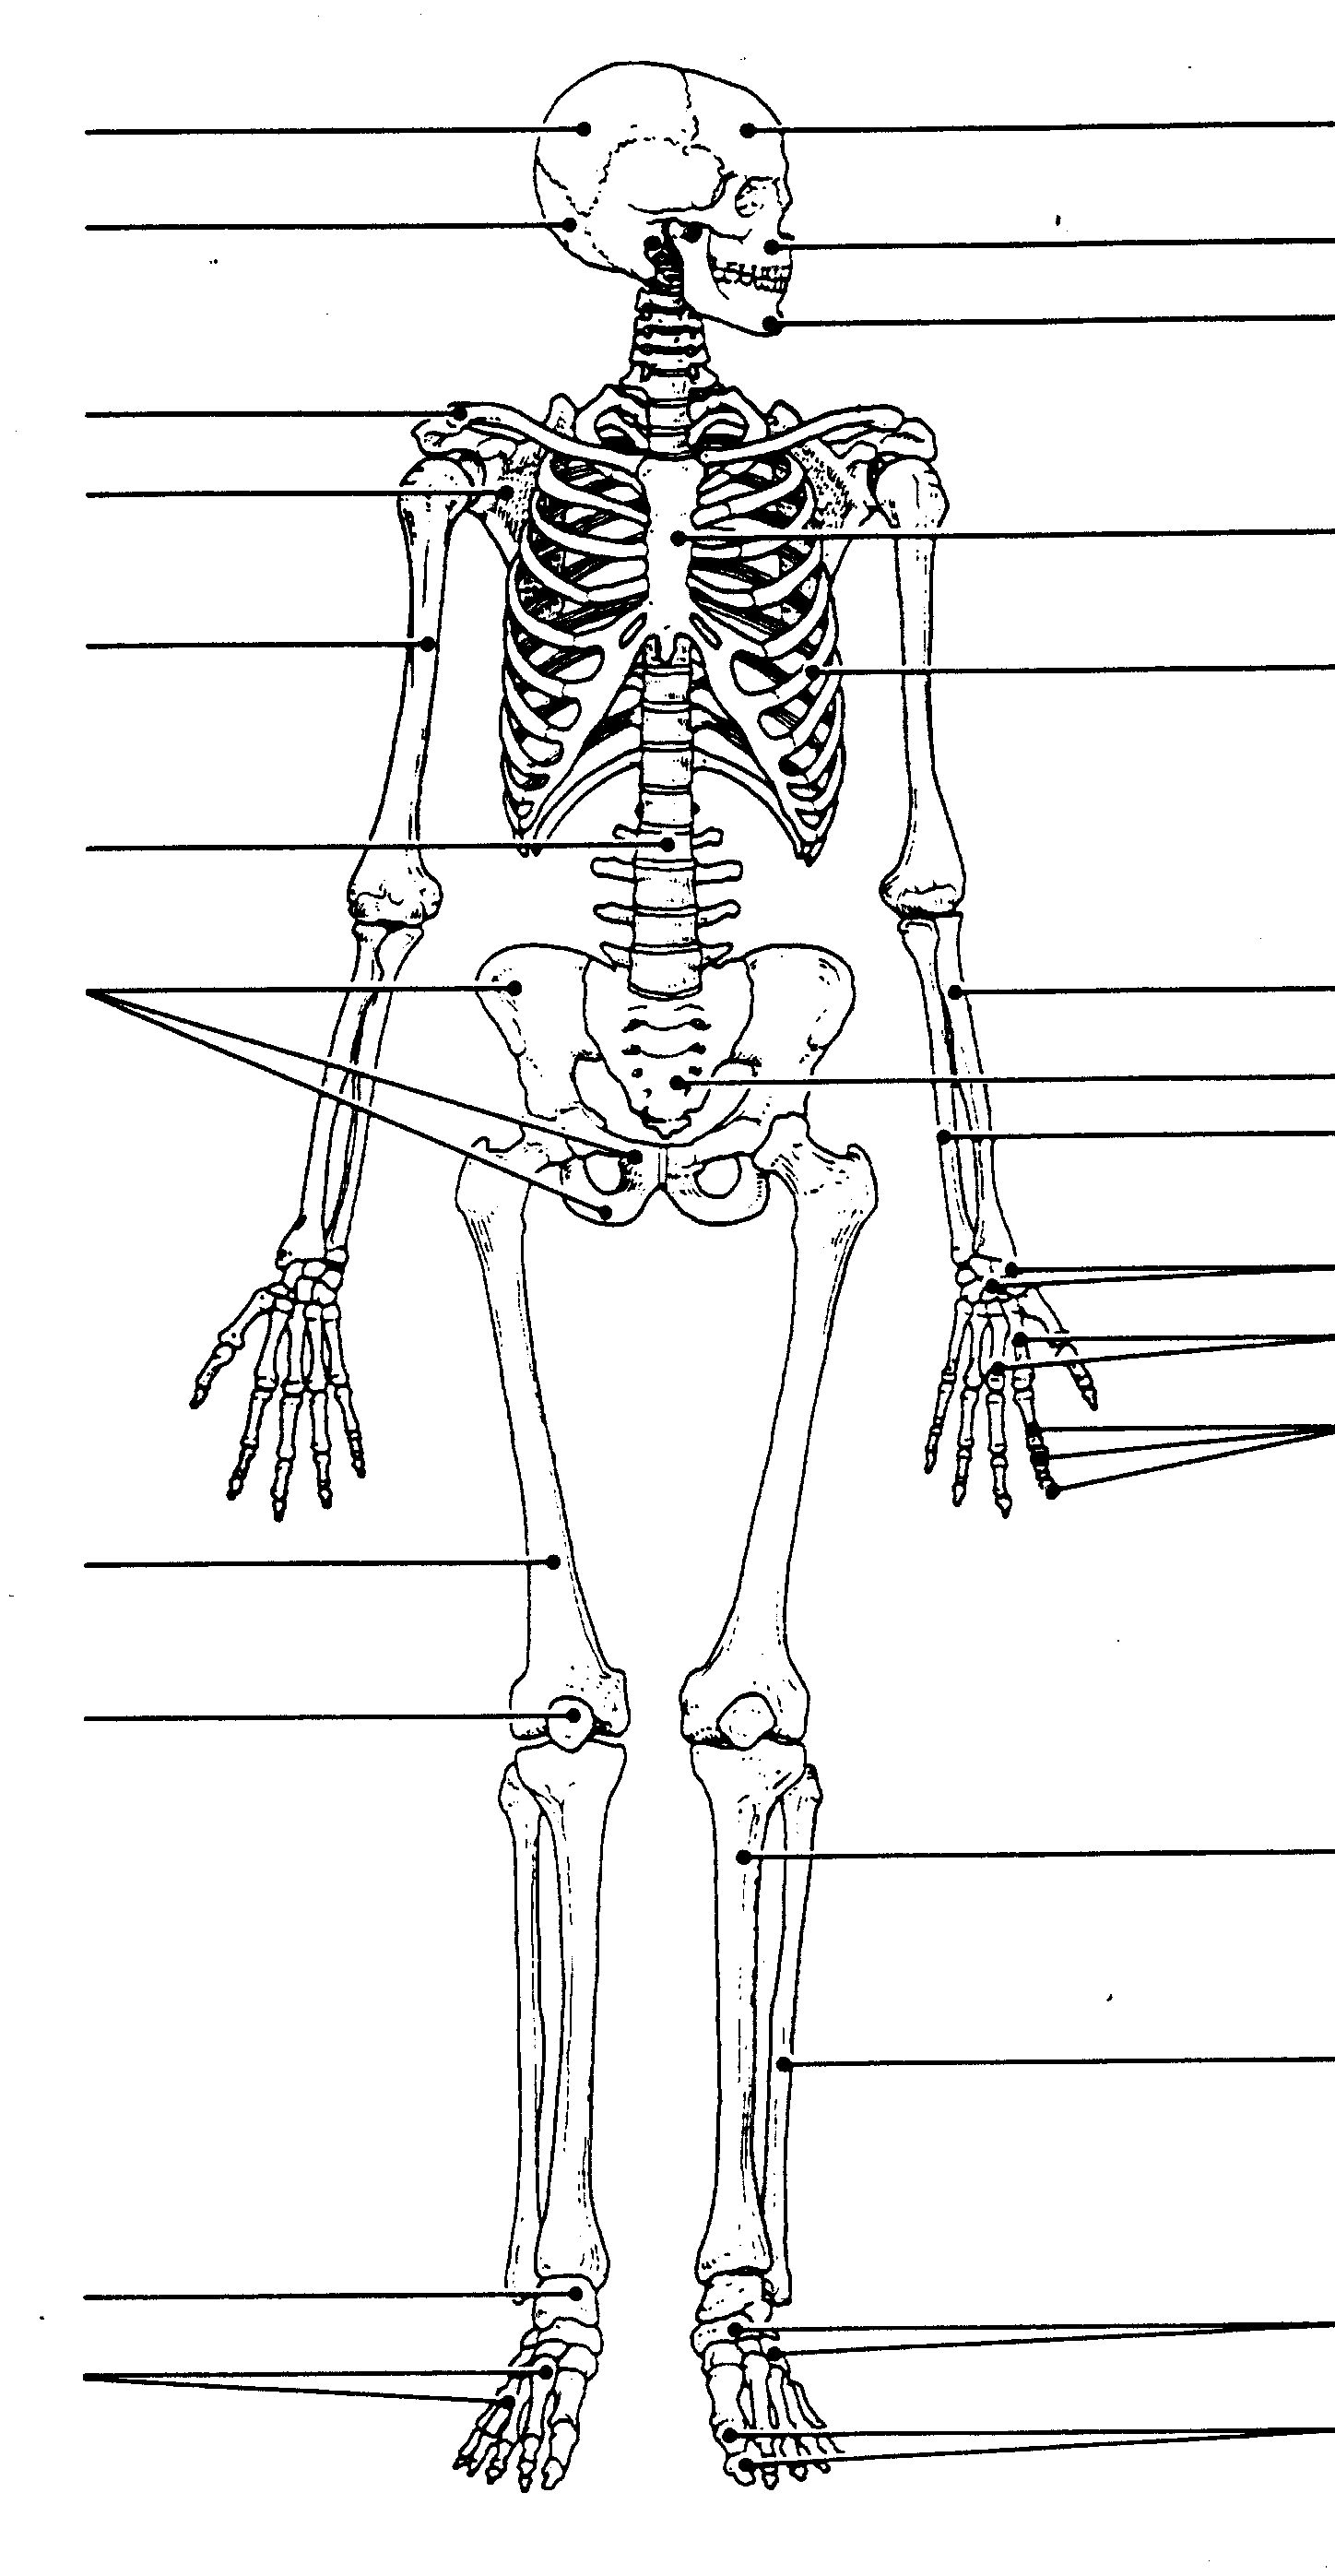 unlabeled human skeleton diagram   unlabeled human skeleton diagram blank  human skeleton diagram unlabeled human skeleton